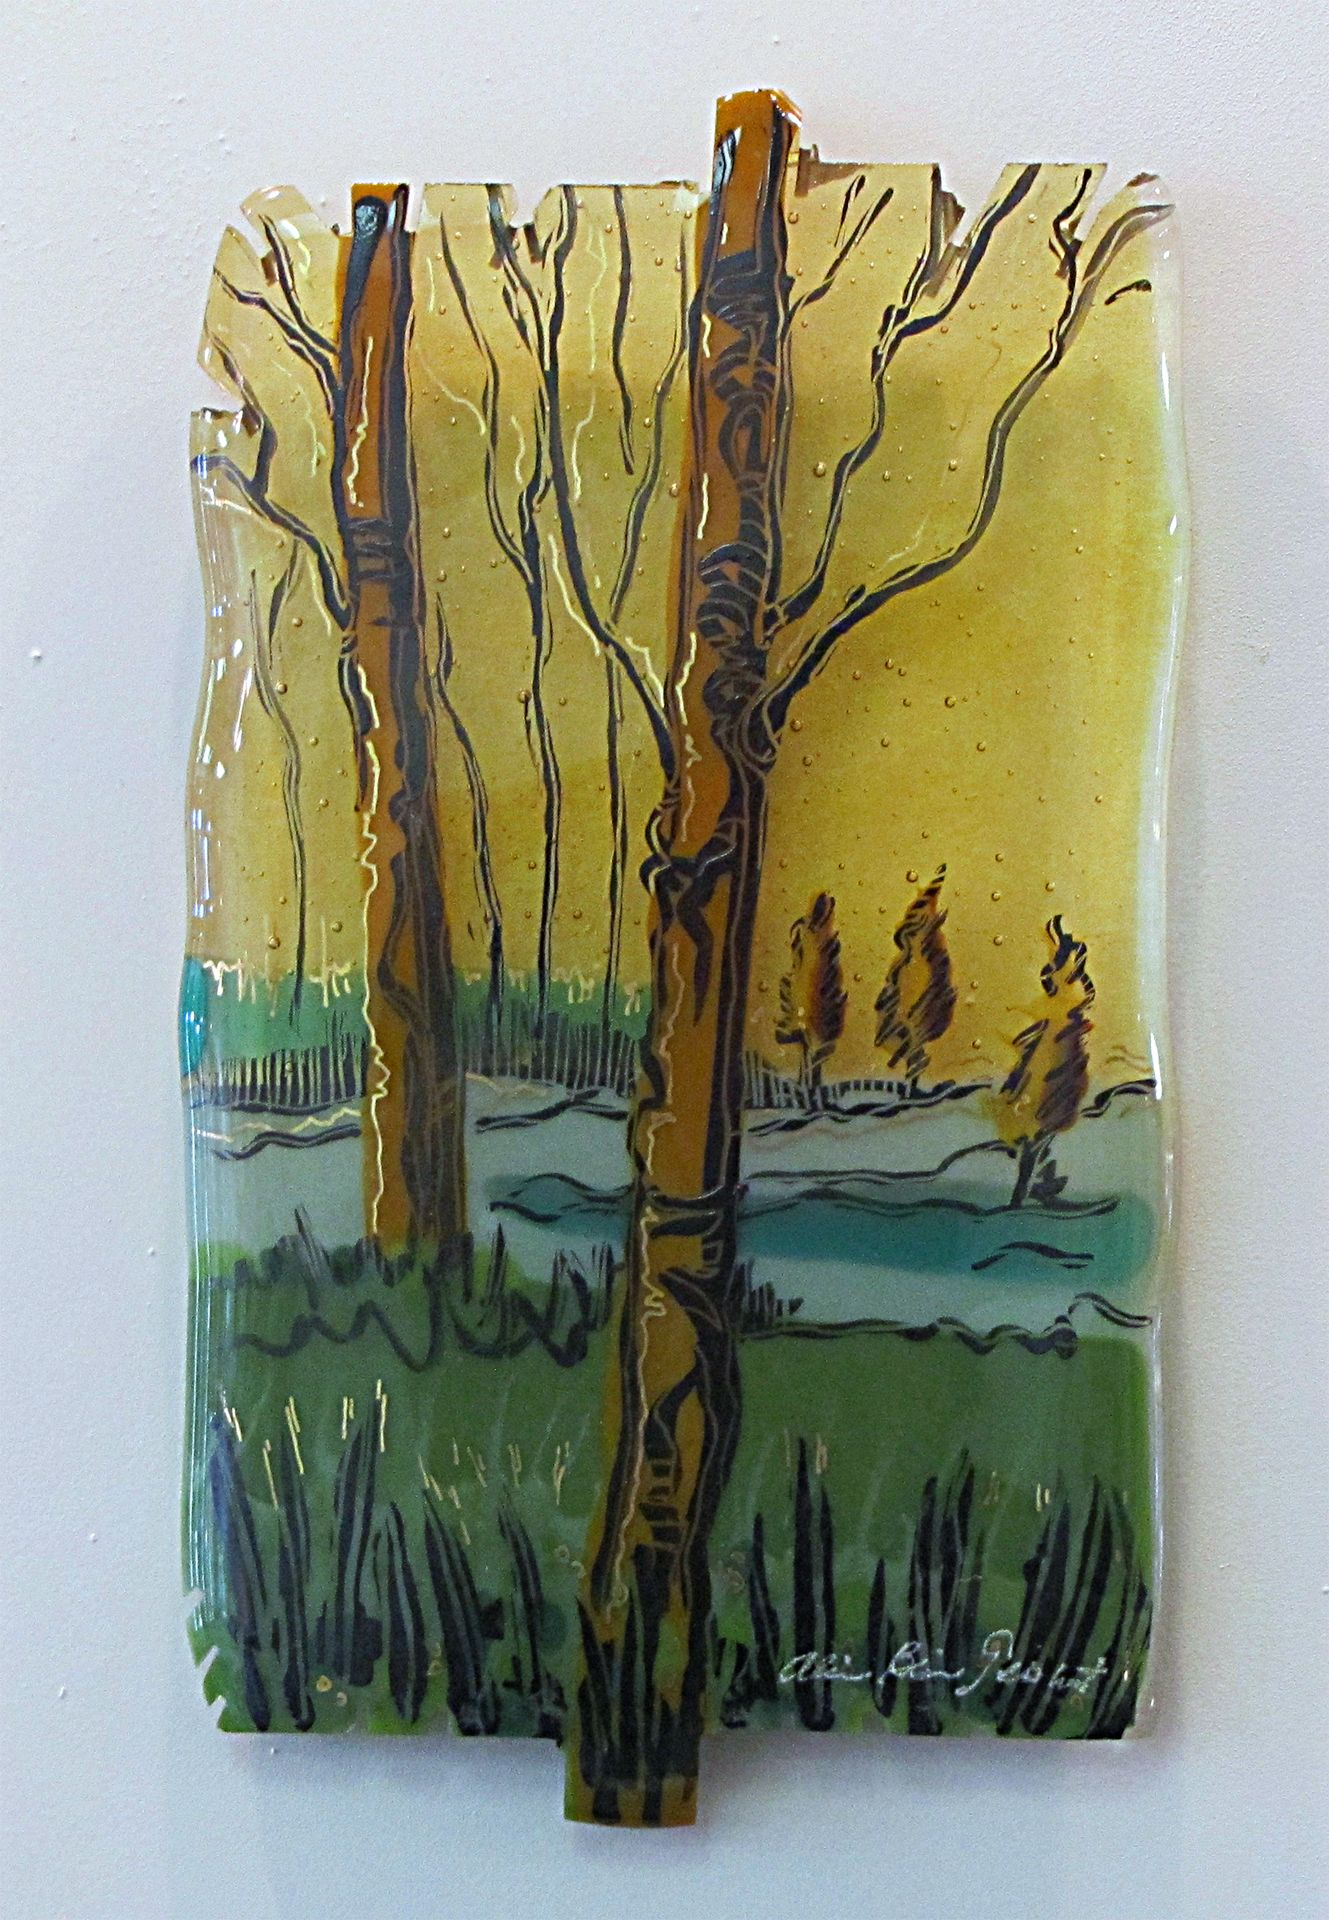 Amber Skies: Kiln Fired Fused Glass, panel by Alice Benvie Gebhart ...